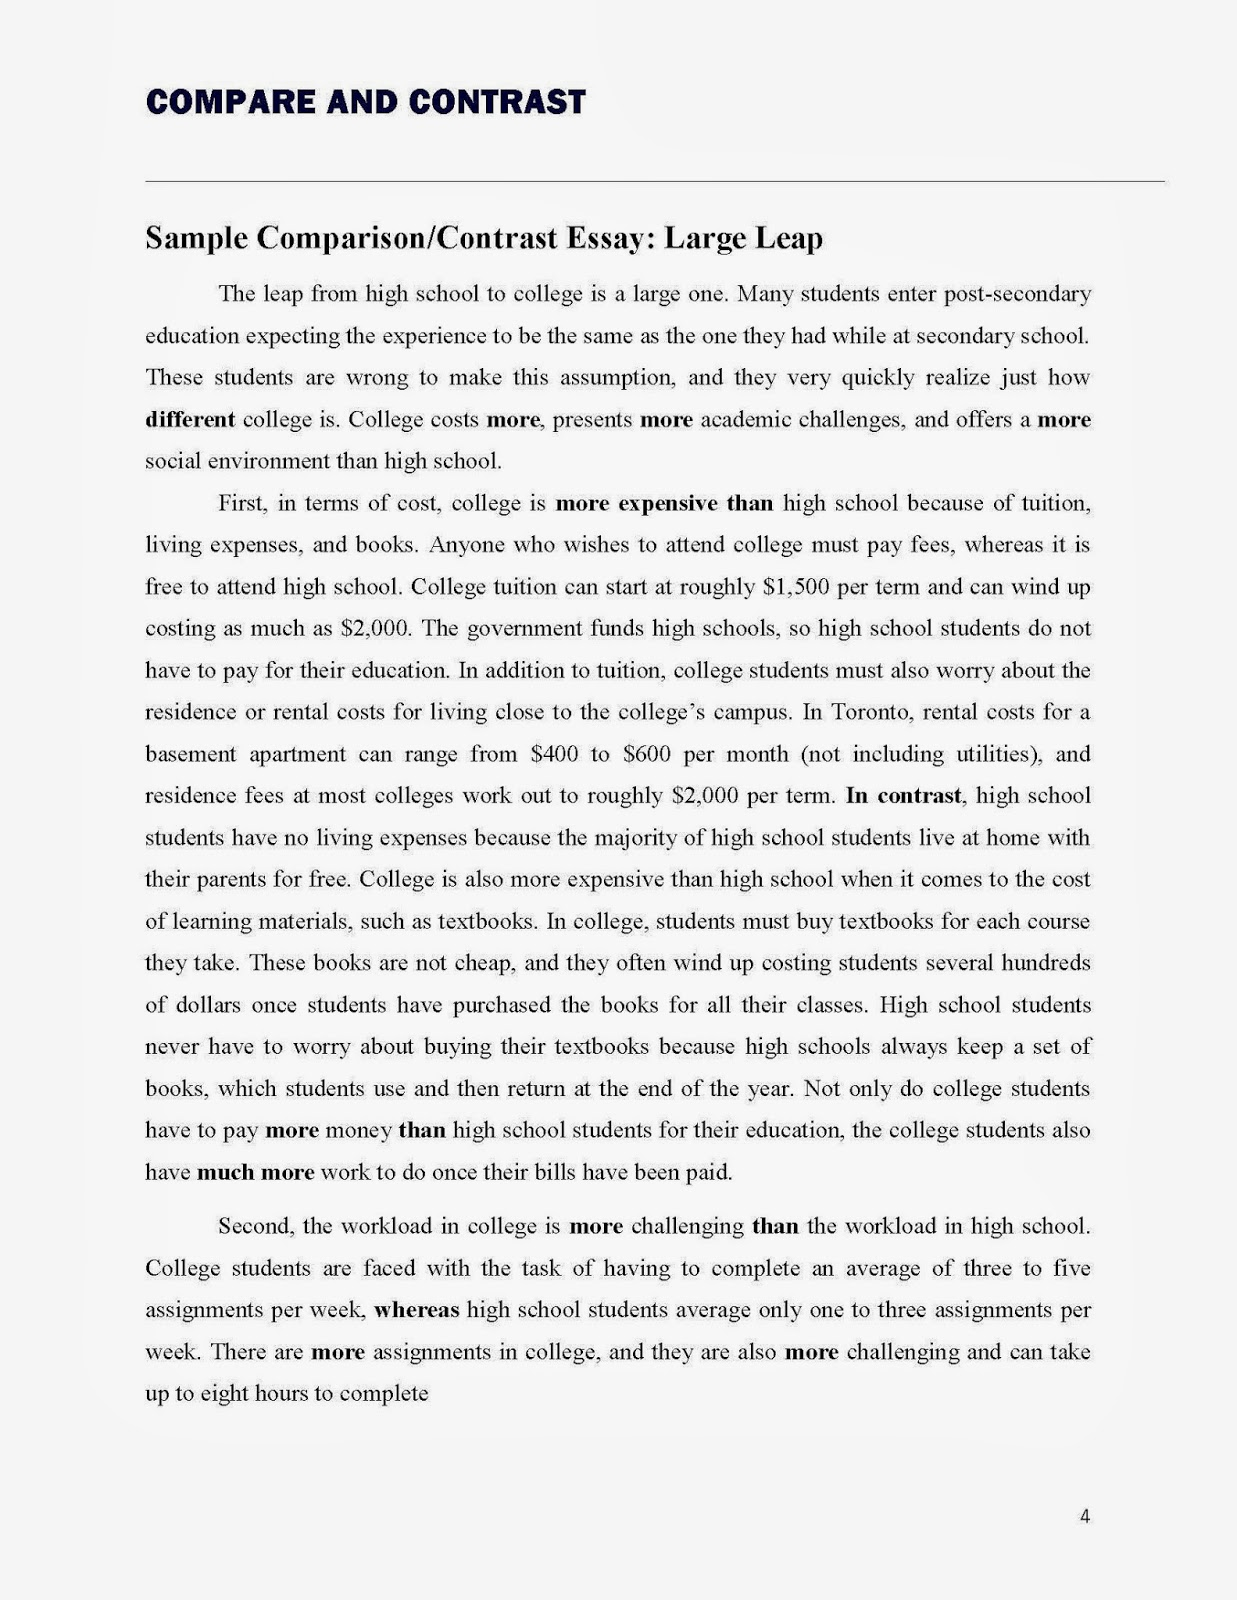 synthesis essay prompt synthesis essay argumentative synthesis  compare contrast essay prompts compare contrast essay writing compare and contrast essay prompt liao ipnodns rucompare